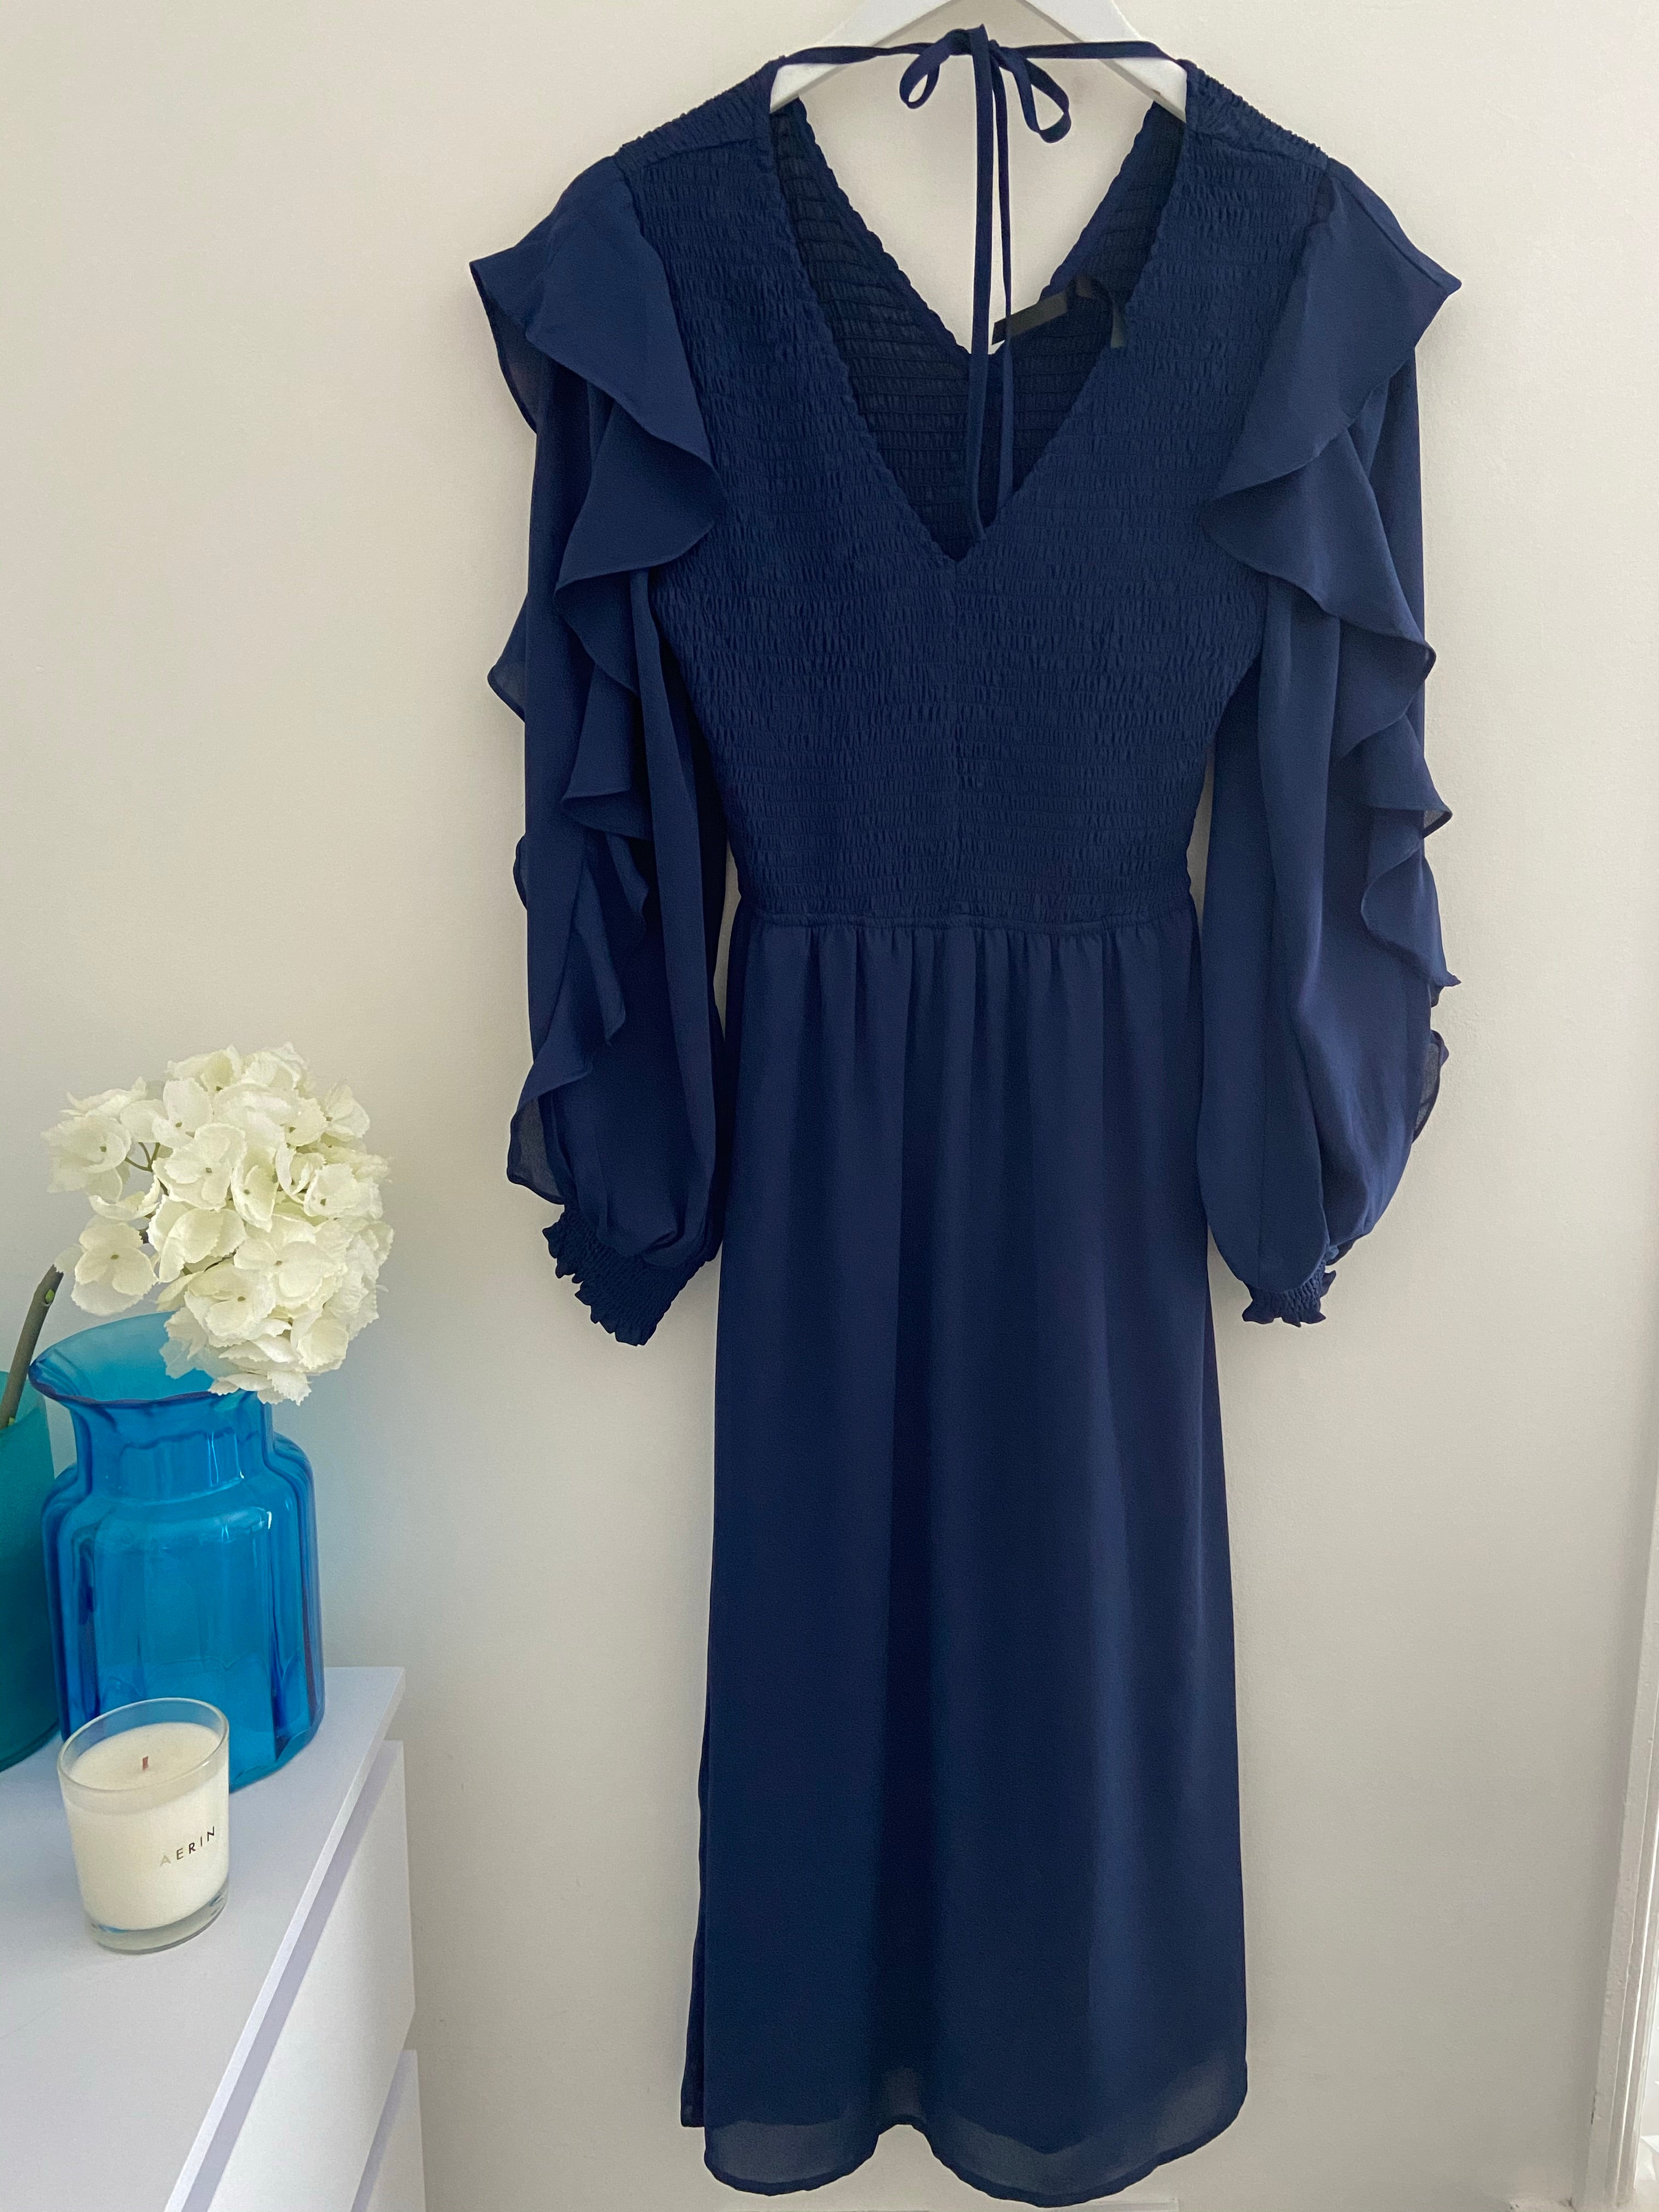 Blue Dress with Smocked Bodice